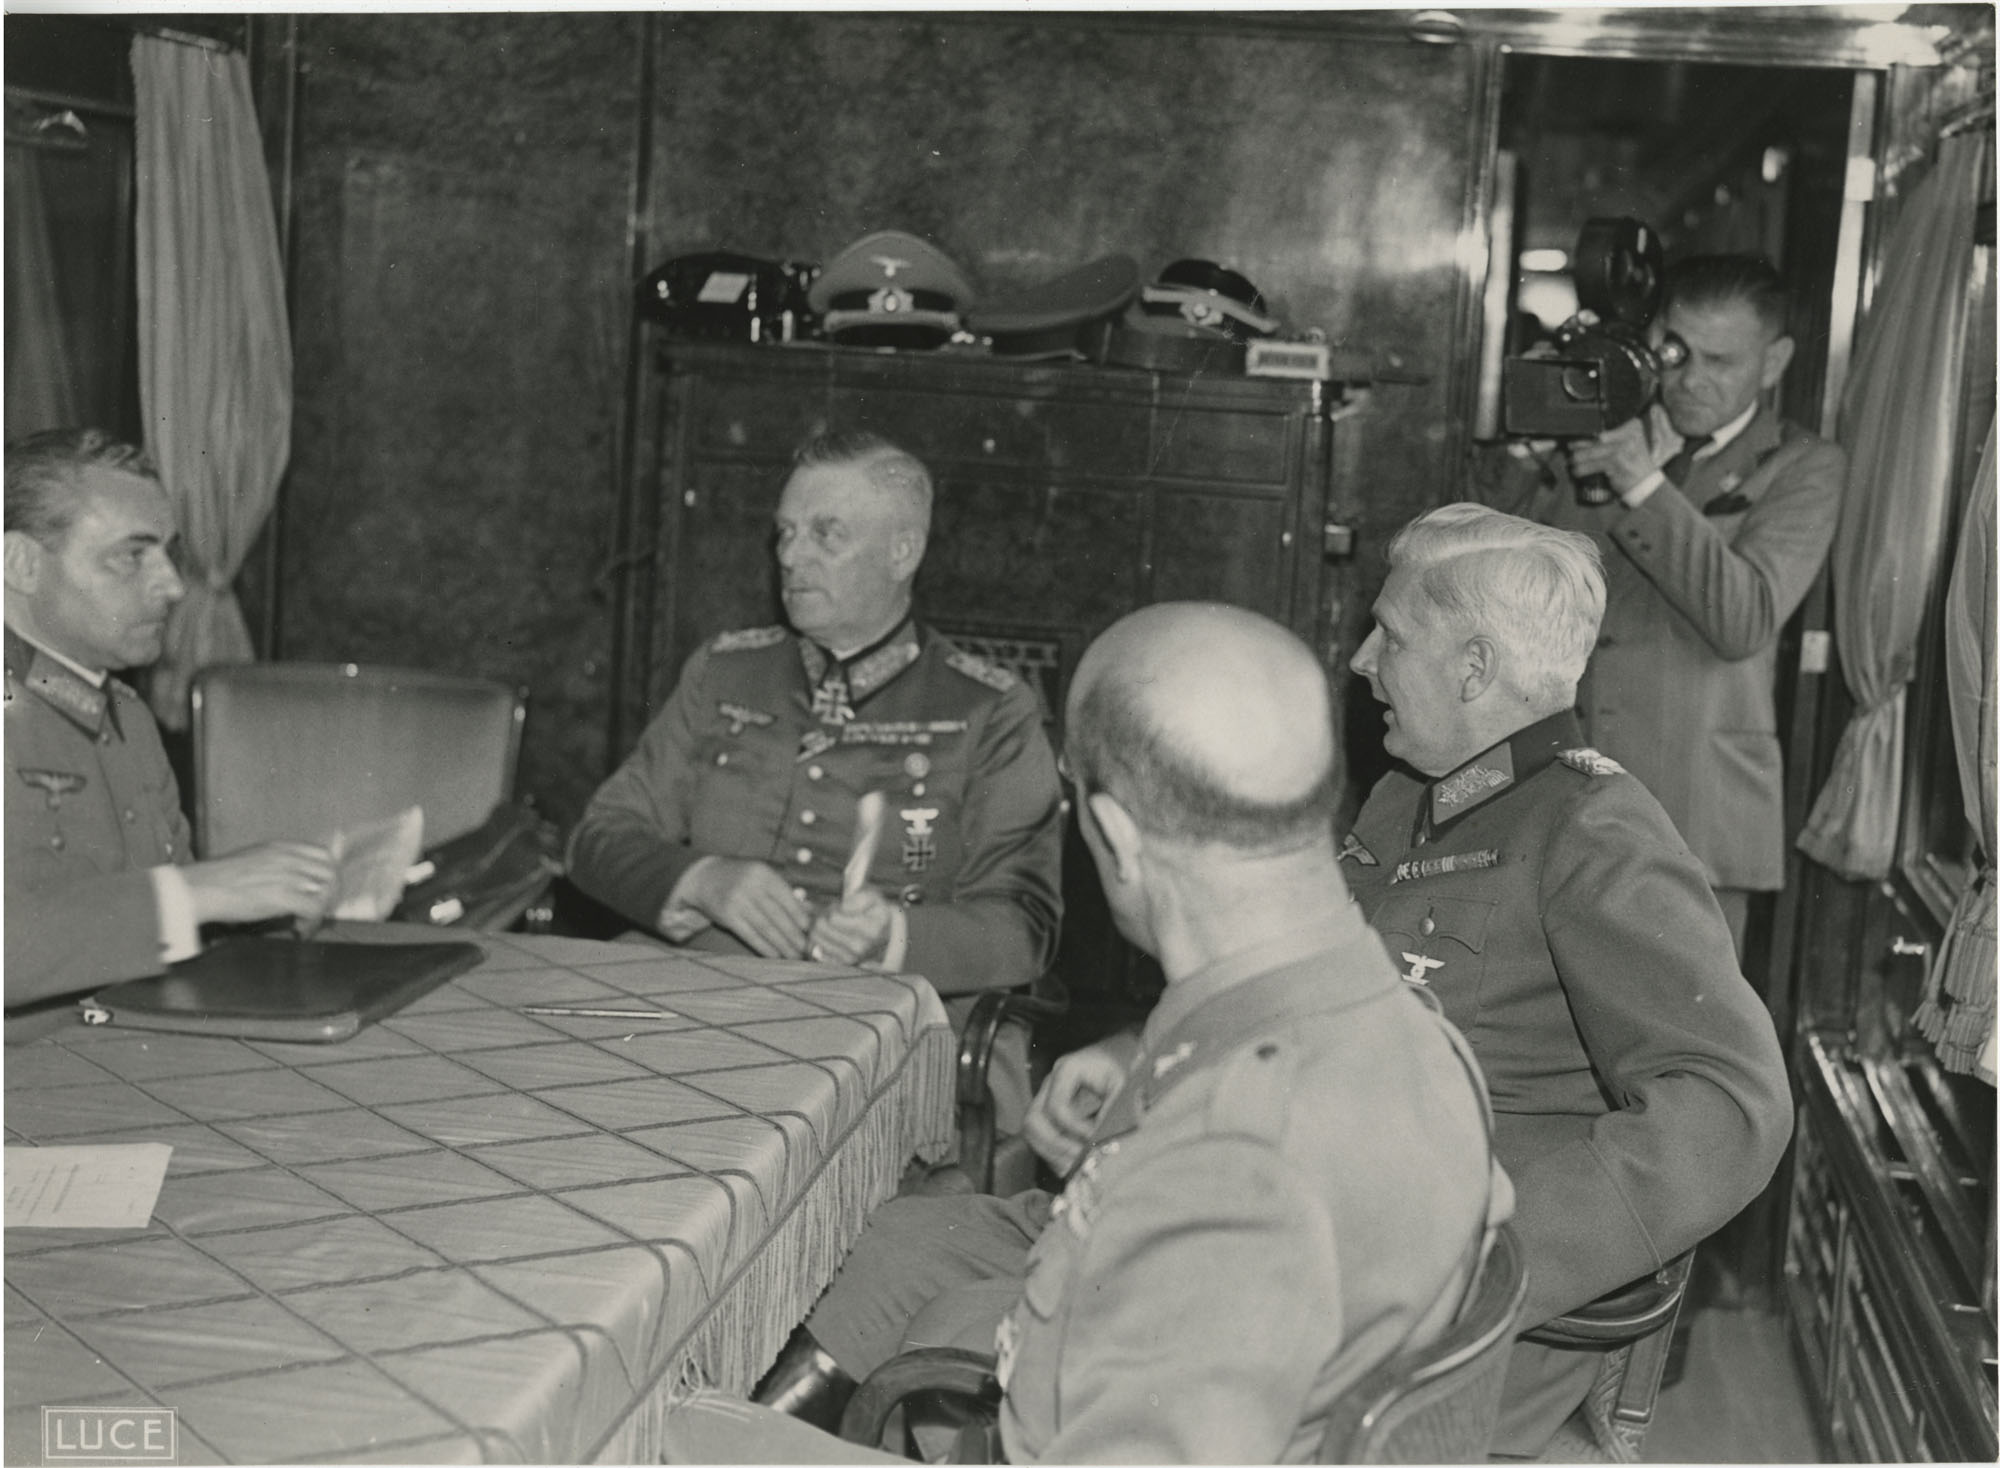 Military officials at a train station, Photograph 4